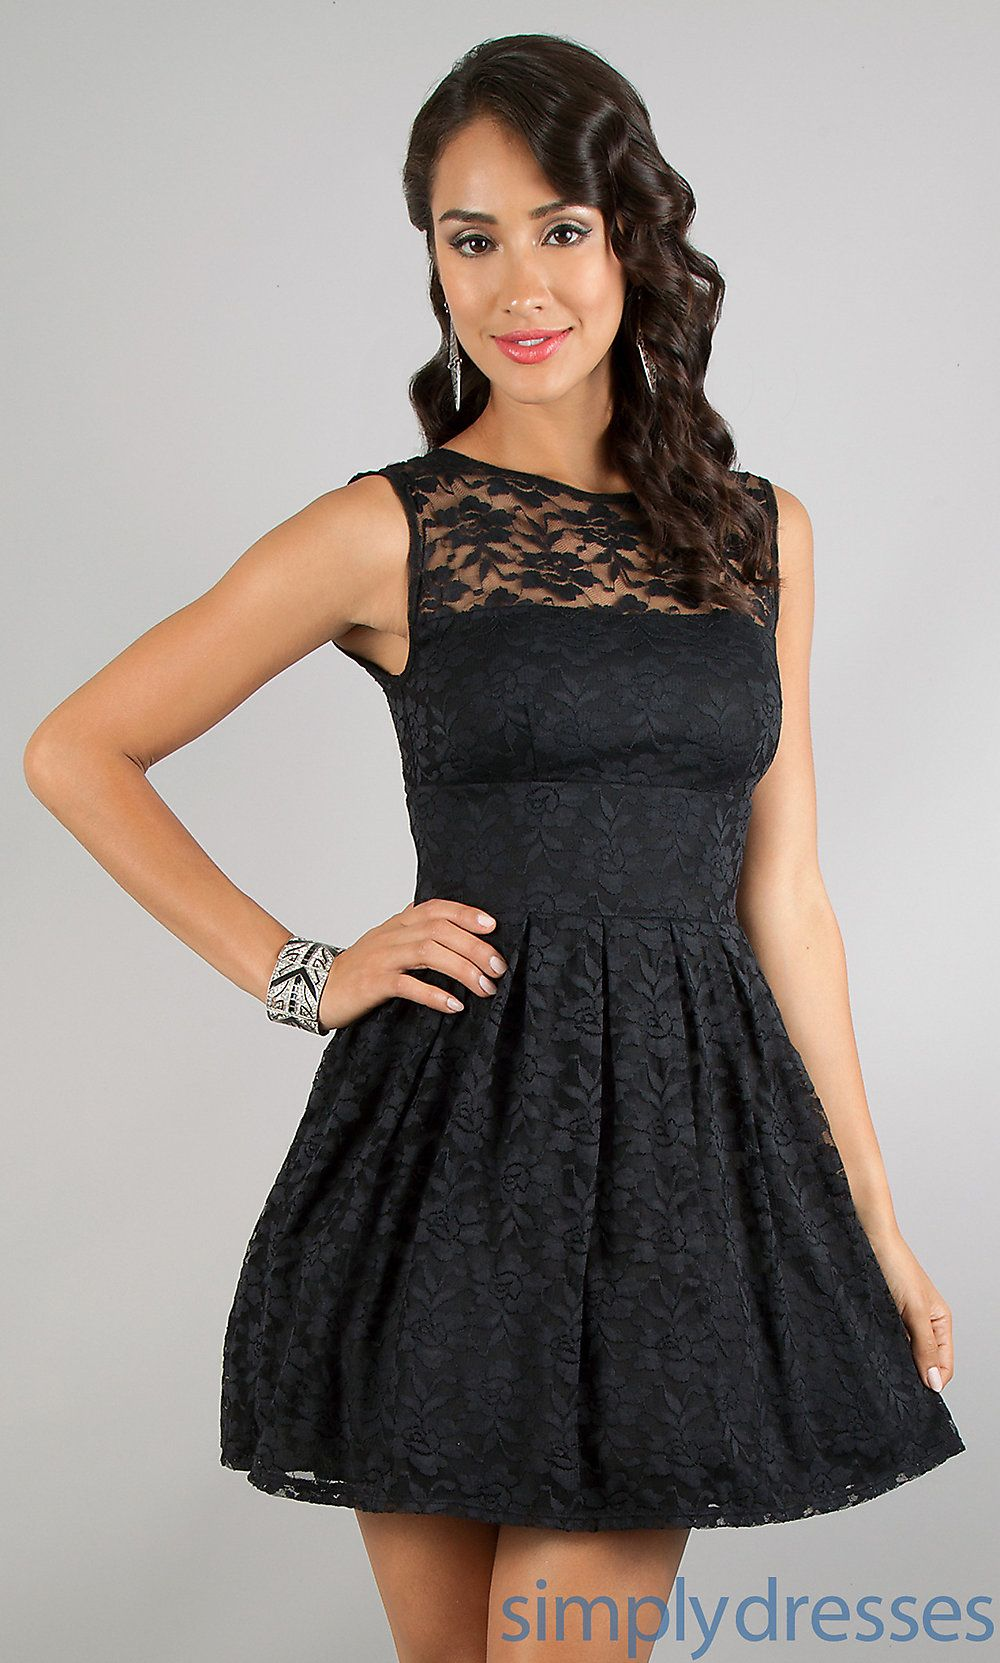 Wedding Black Short Dresses collection black short dresses pictures fashion trends and models club google search nightclub pinterest